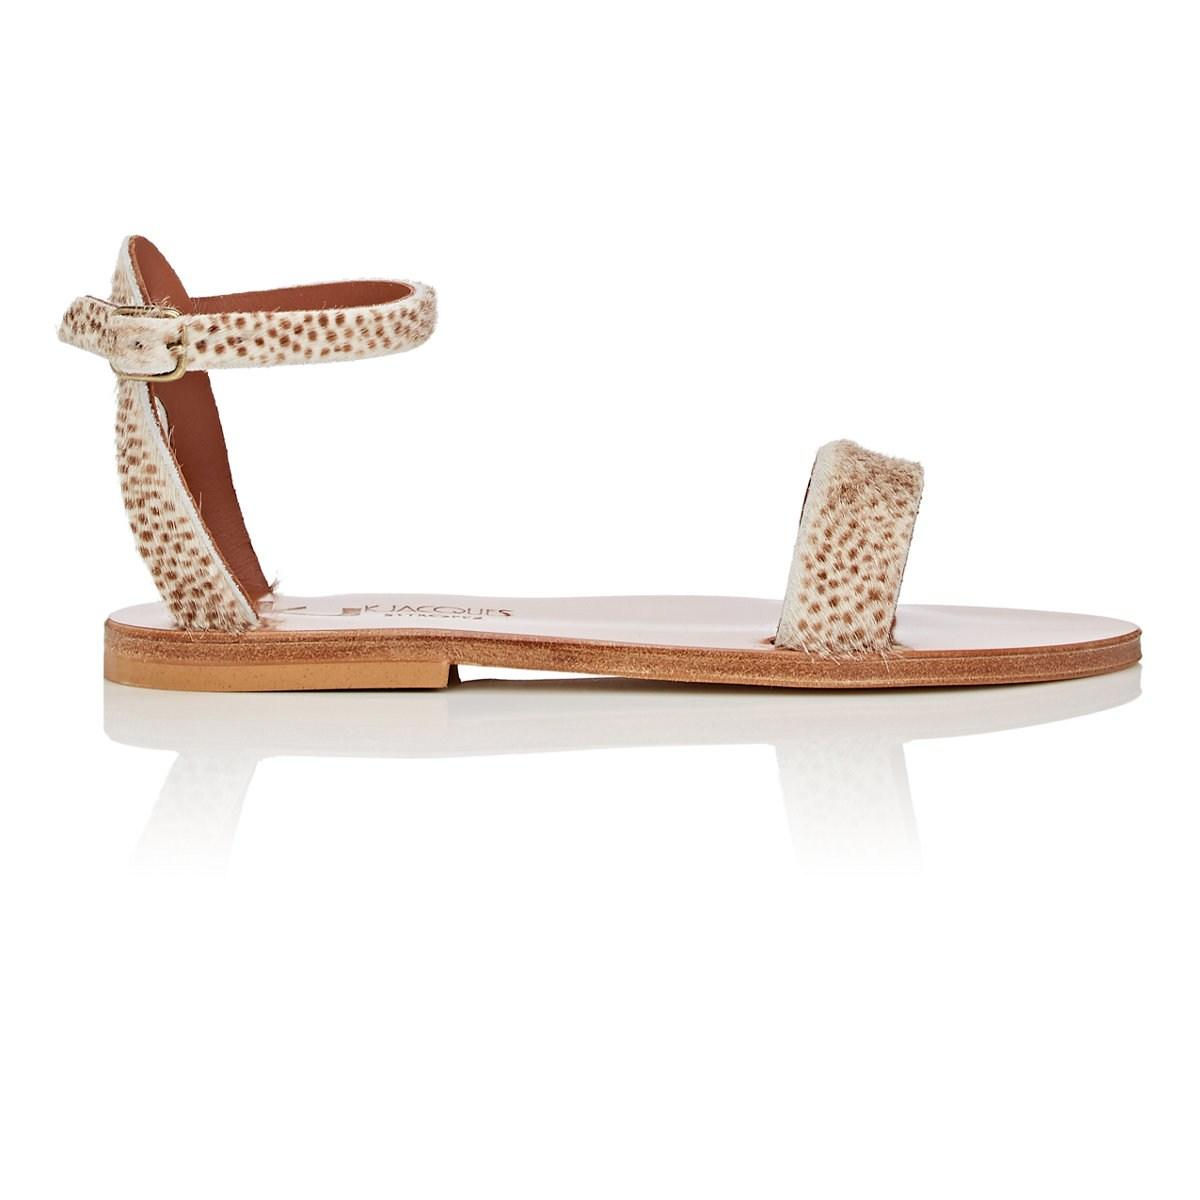 b769628fbbc6 Lyst - K. Jacques Pampa Calf Hair Sandals Size 7 in White - Save 70%